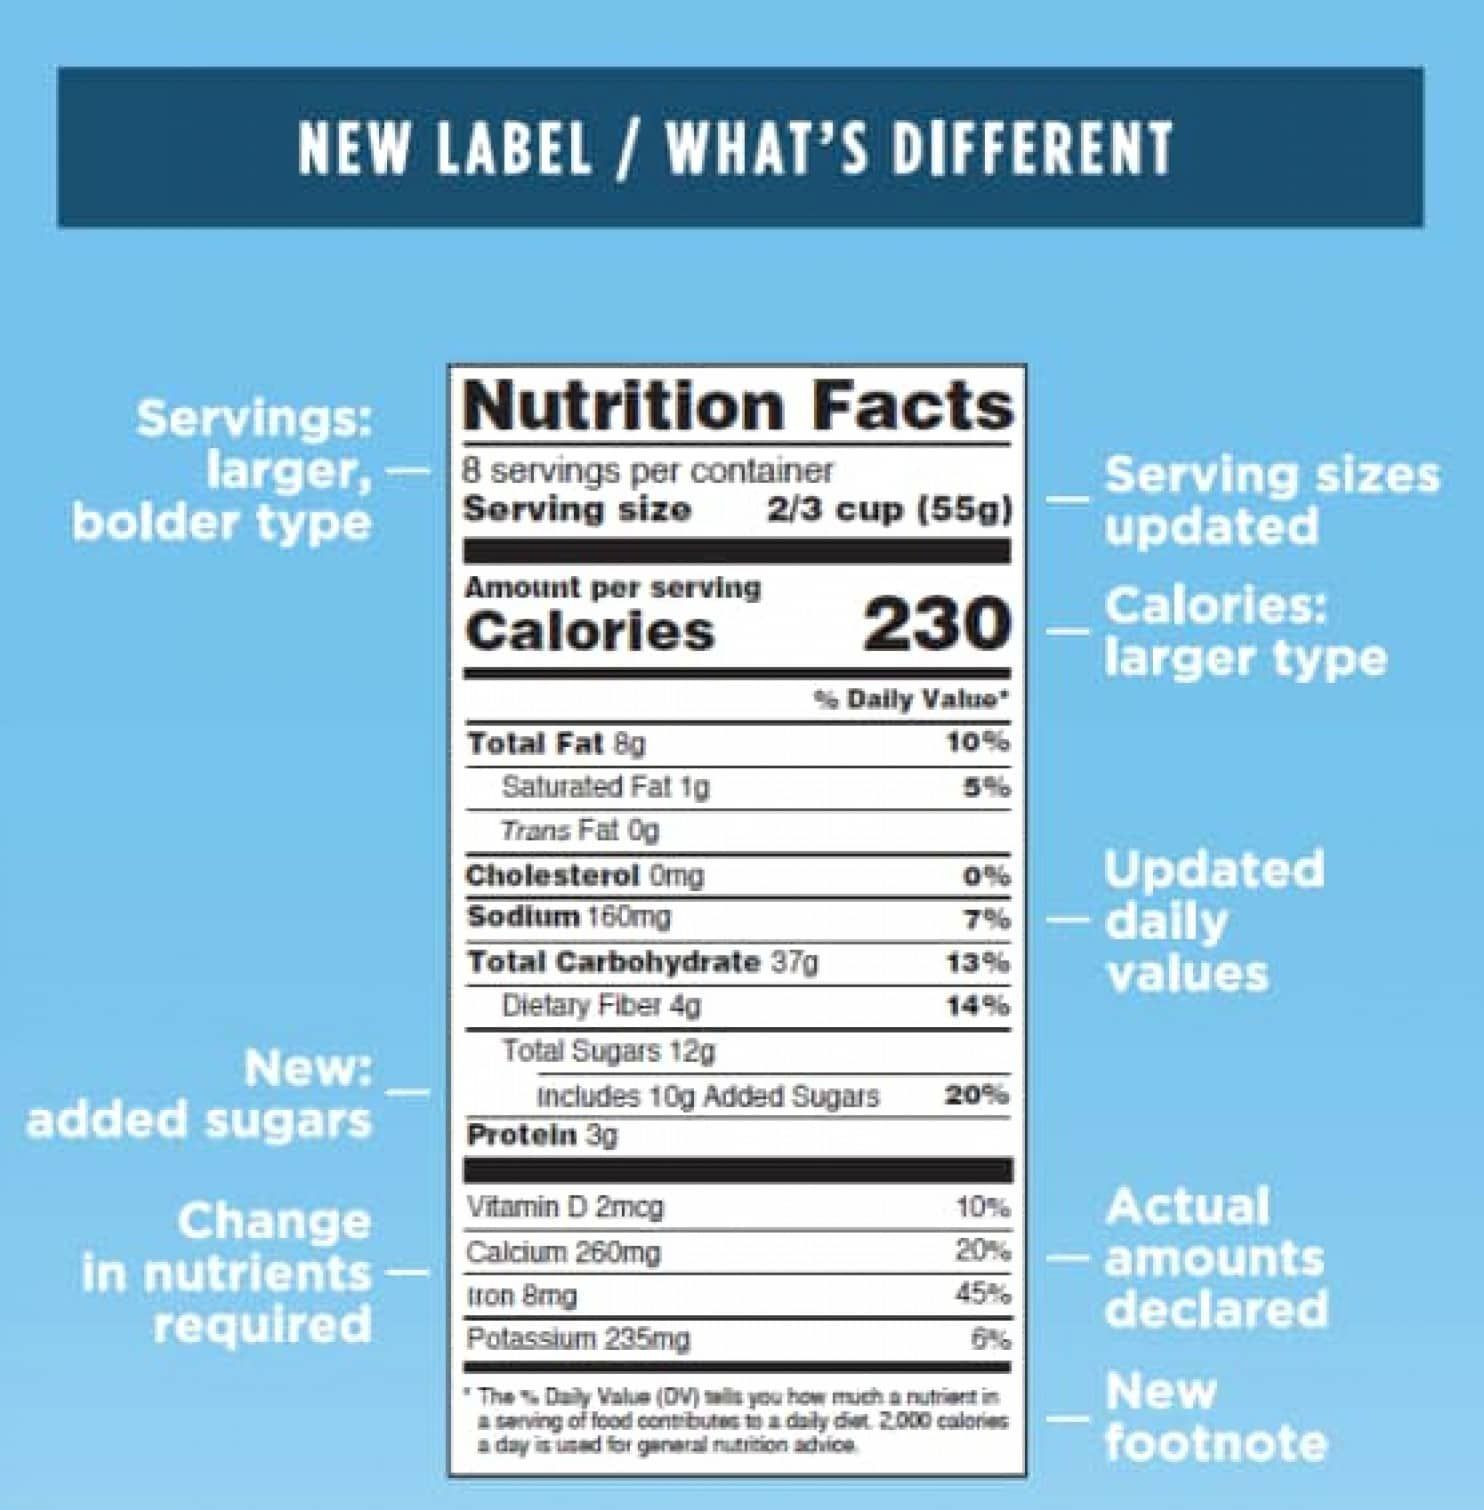 Trump S Fda Just Took Another Swipe At Michelle Obama S Food Legacy Nutrition Facts Label